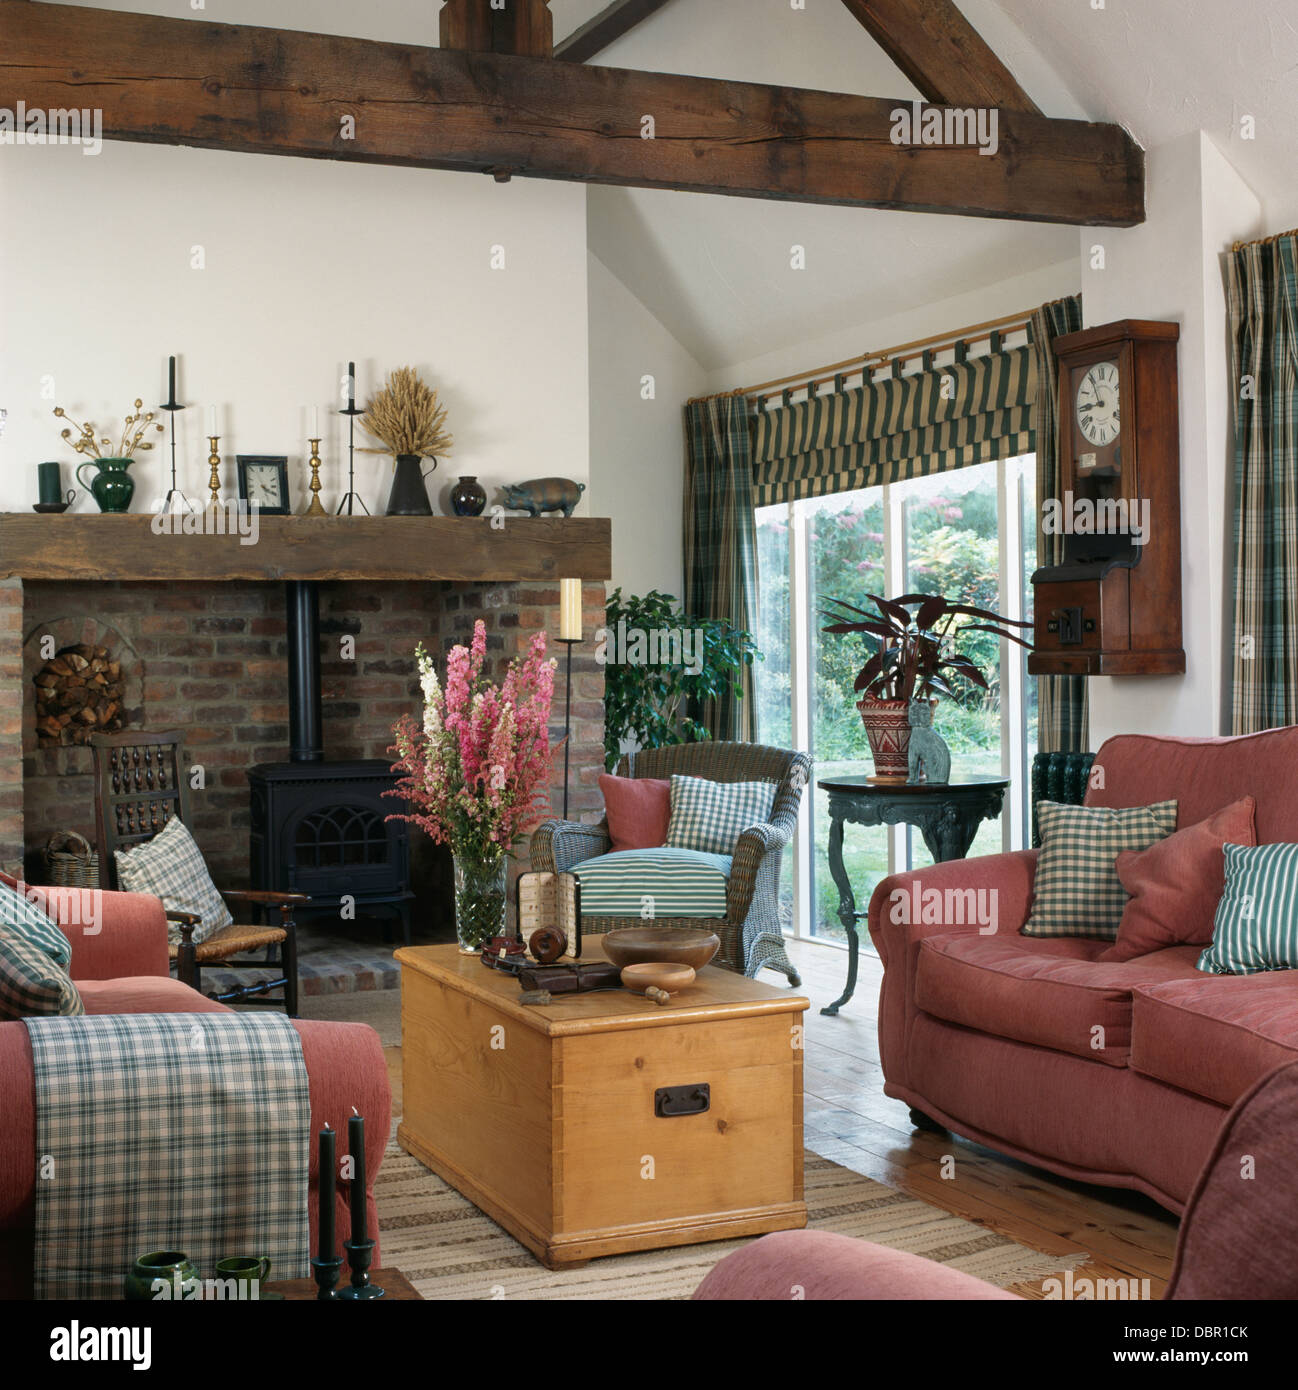 pink sofas and old pine chest used as a coffee table in living room stock photo 58898355 alamy. Black Bedroom Furniture Sets. Home Design Ideas